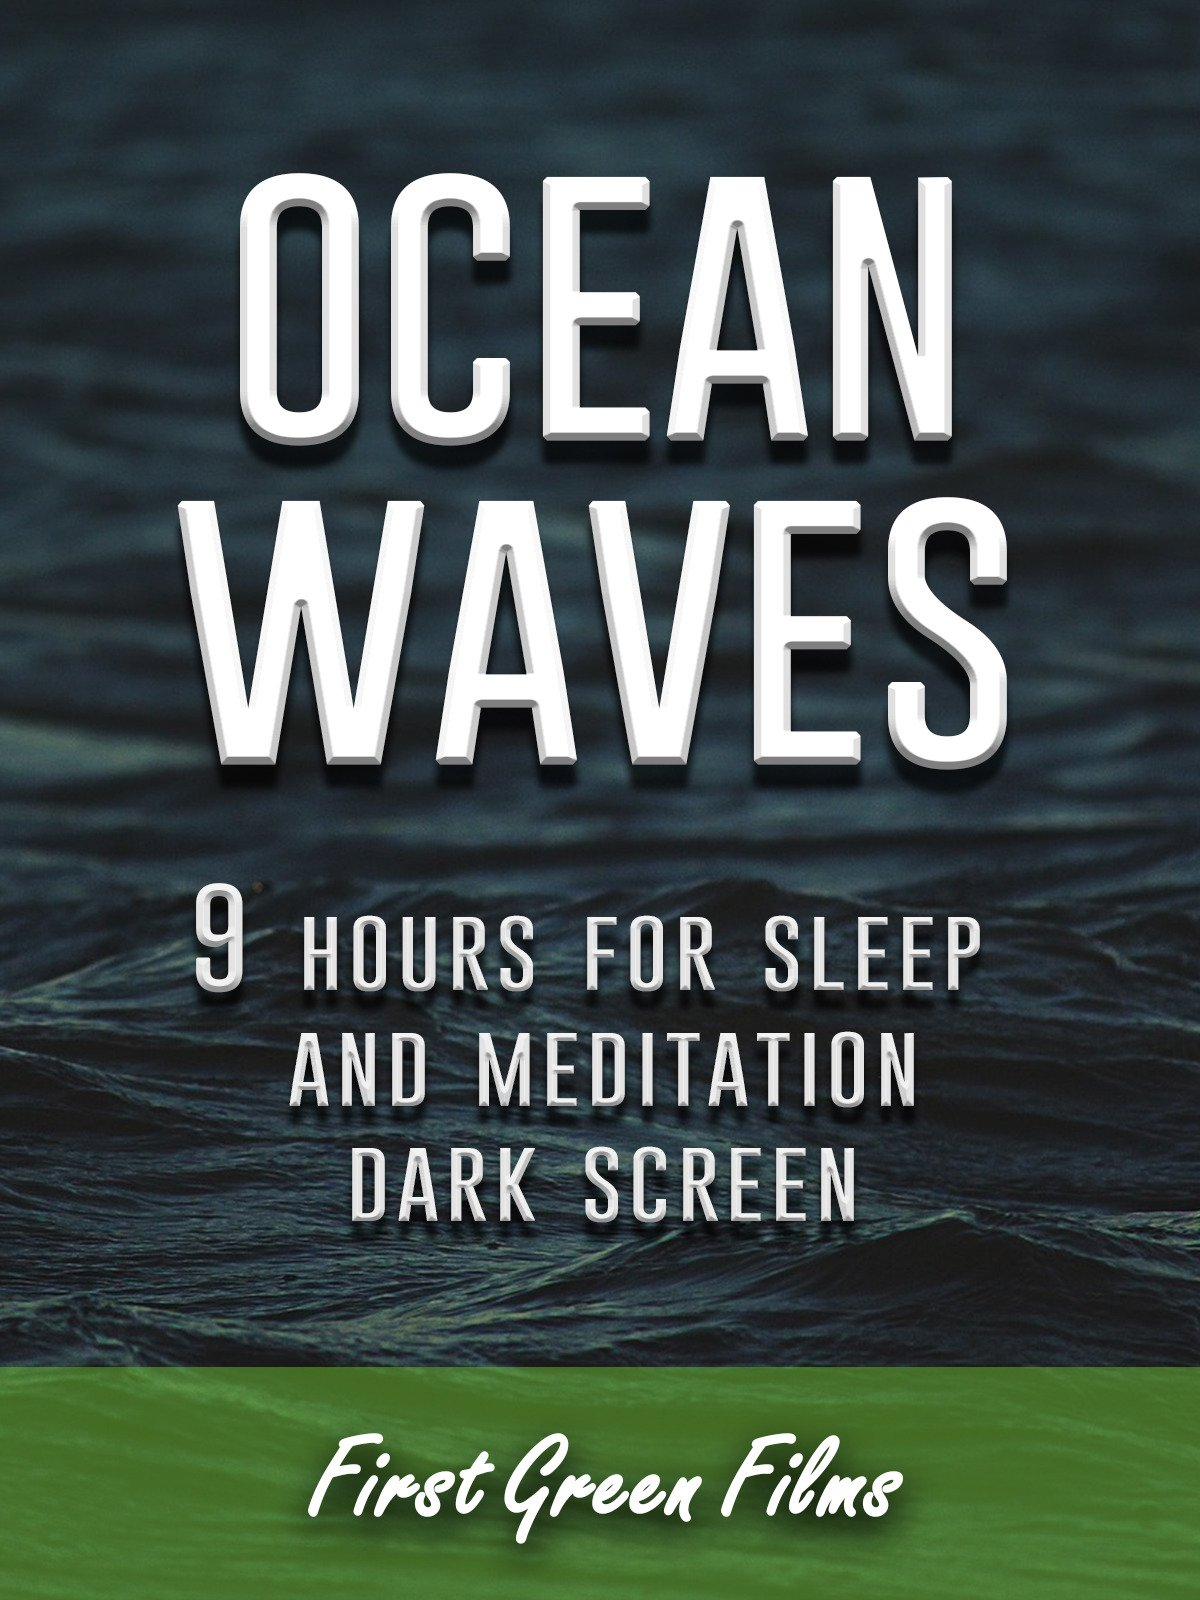 Ocean waves, 9 hours for Sleep and Meditation, dark screen